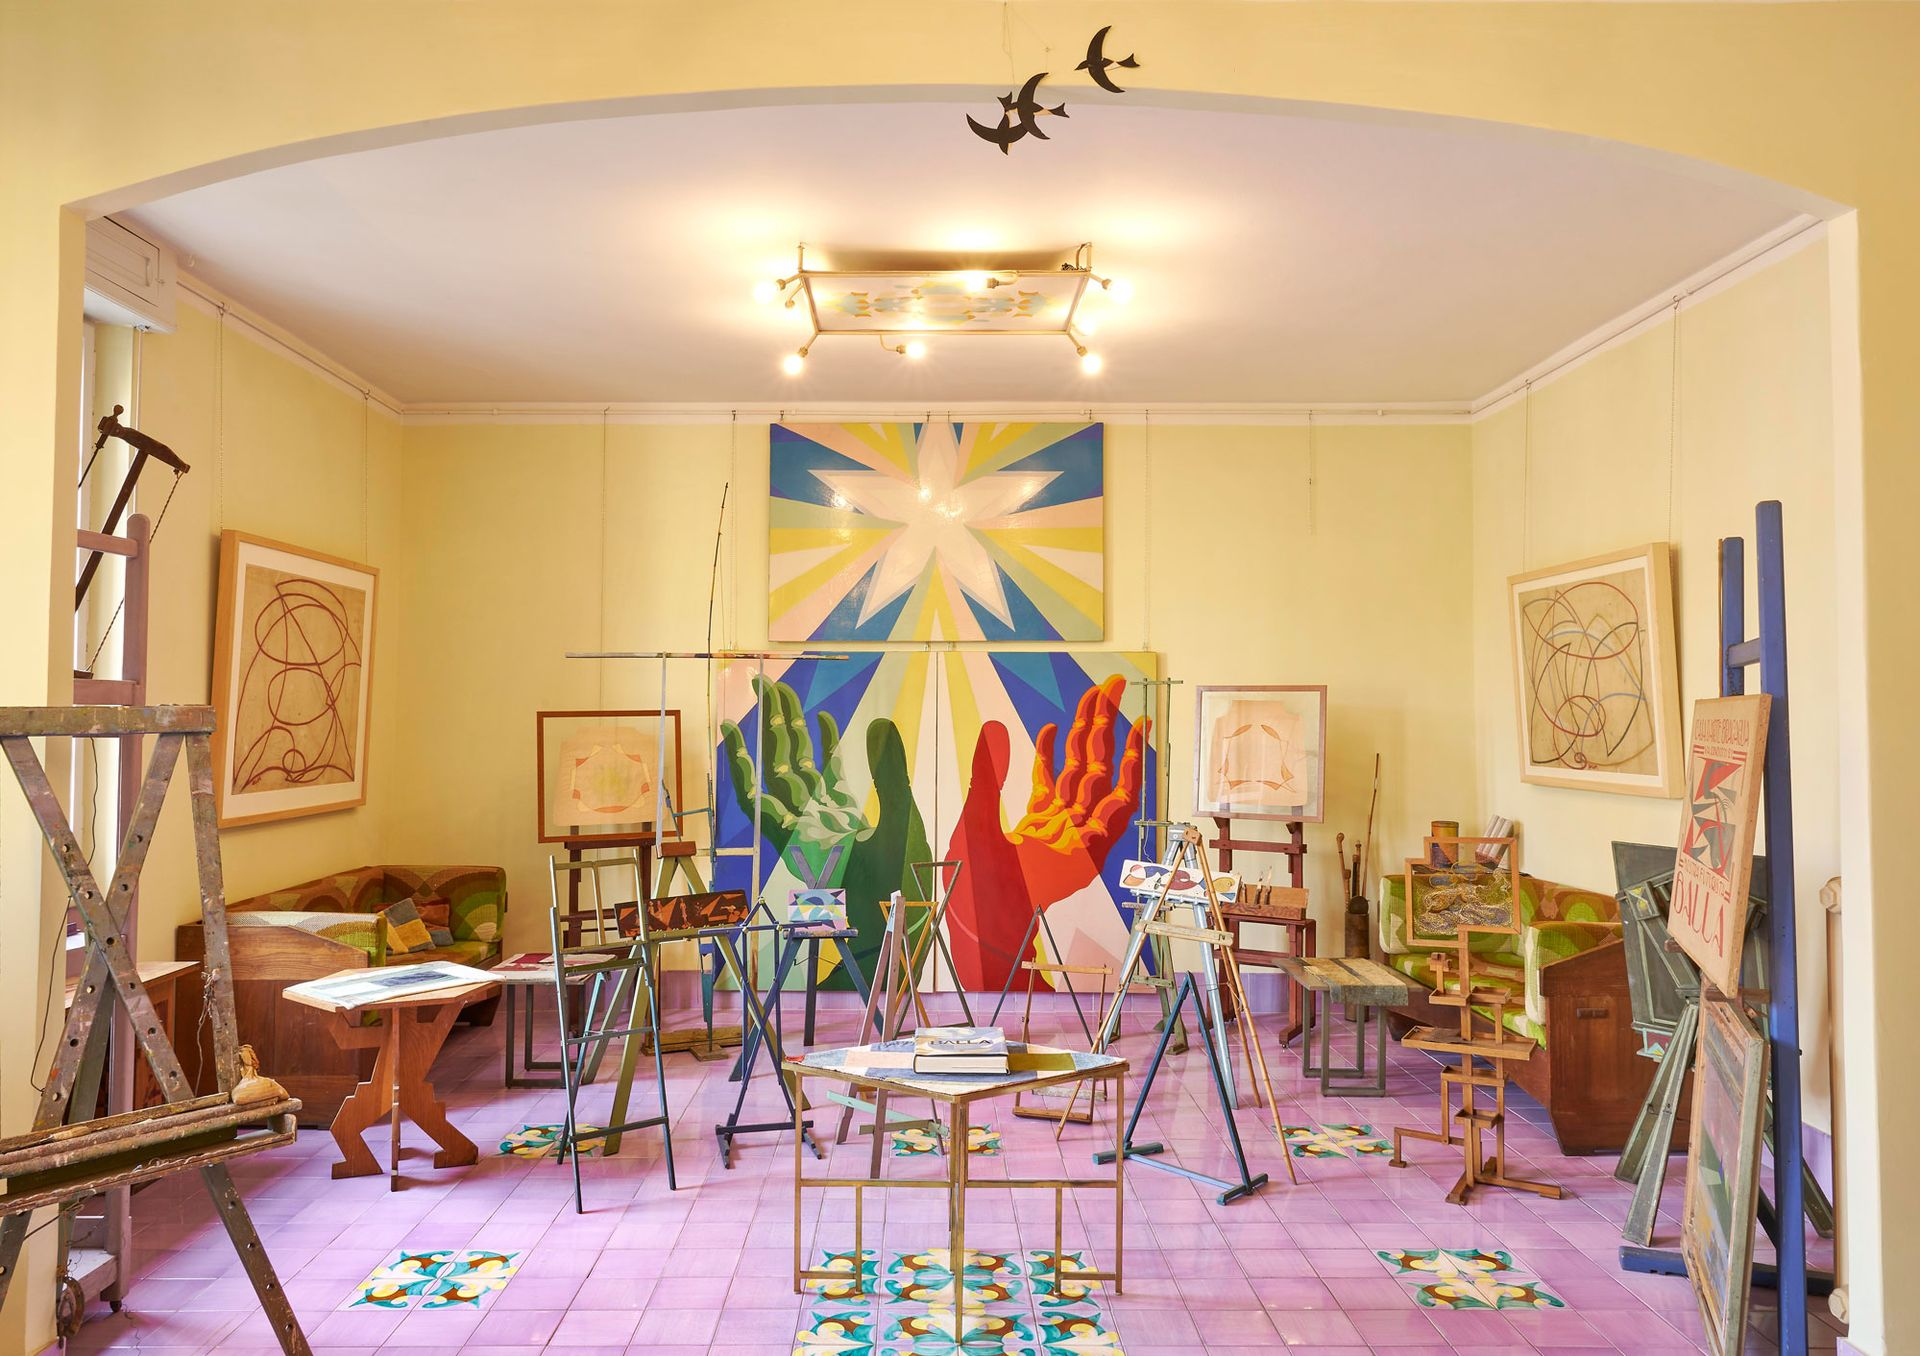 Giacomo Balla added his colourful Futurist designs to the walls and furniture of his Rome apartment, a total work of art now open for guided tours by MaXXI museum Photo: M3Studio; courtesy of Fondazione MAXXI; © Giacomo Balla, by SIAE 2021